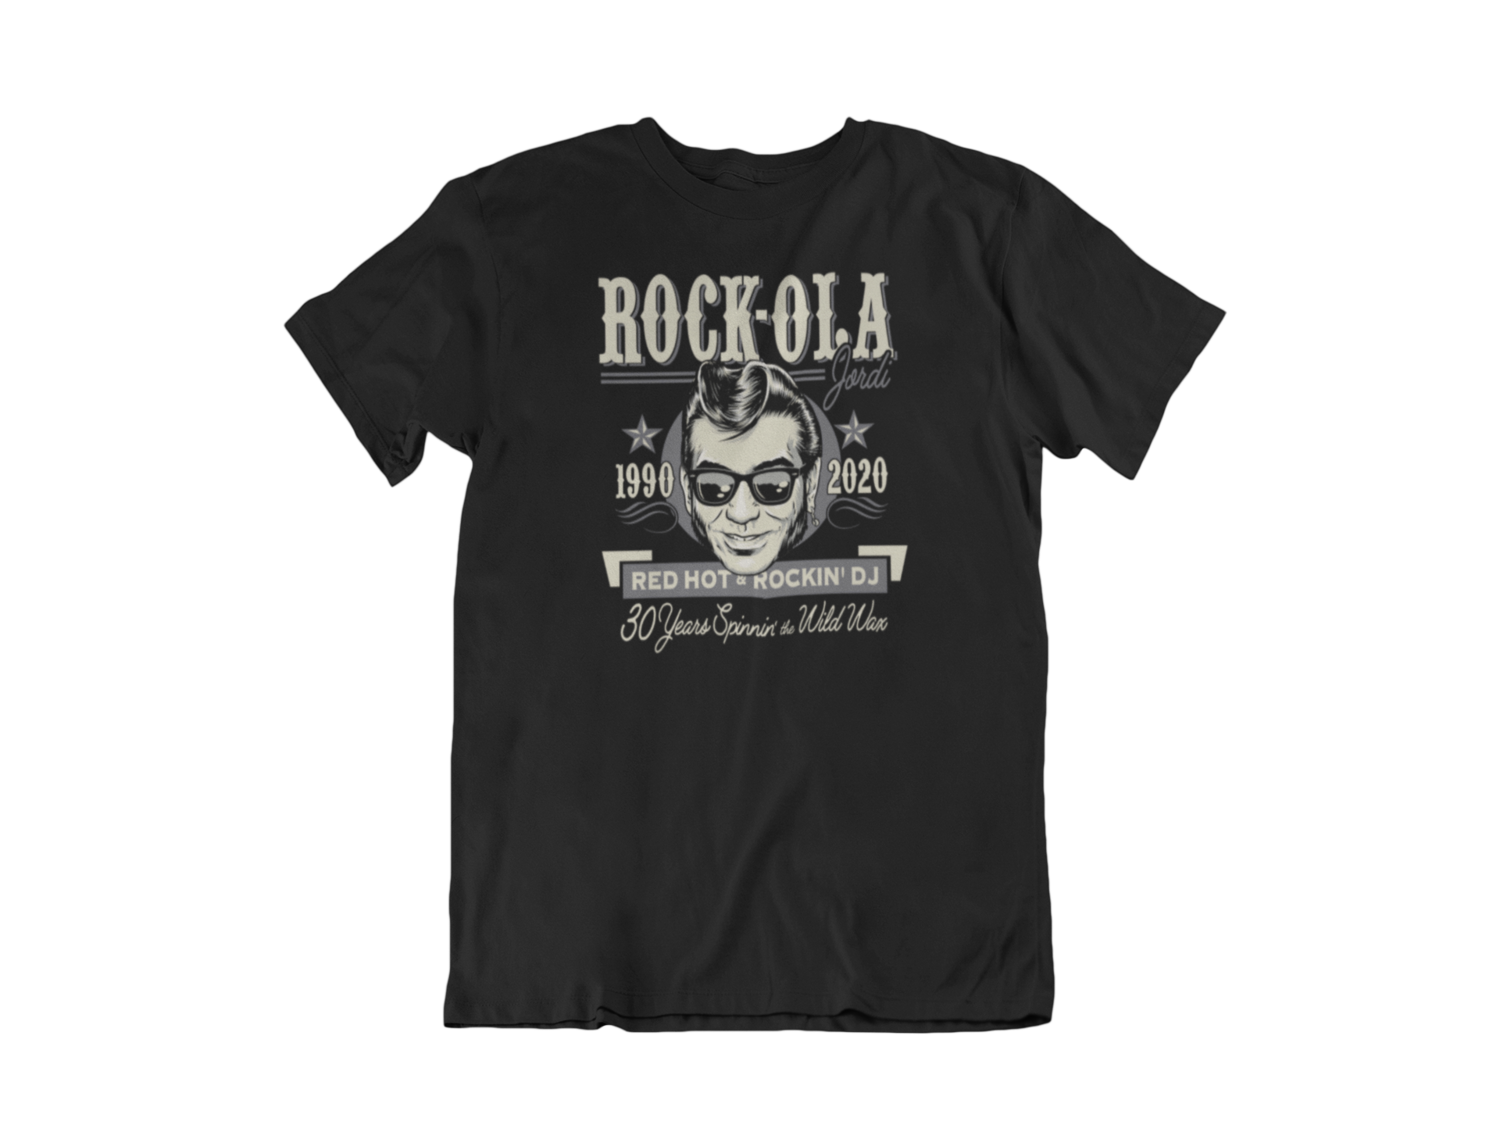 Rock-ola Jordi Dj tshirt for MEN